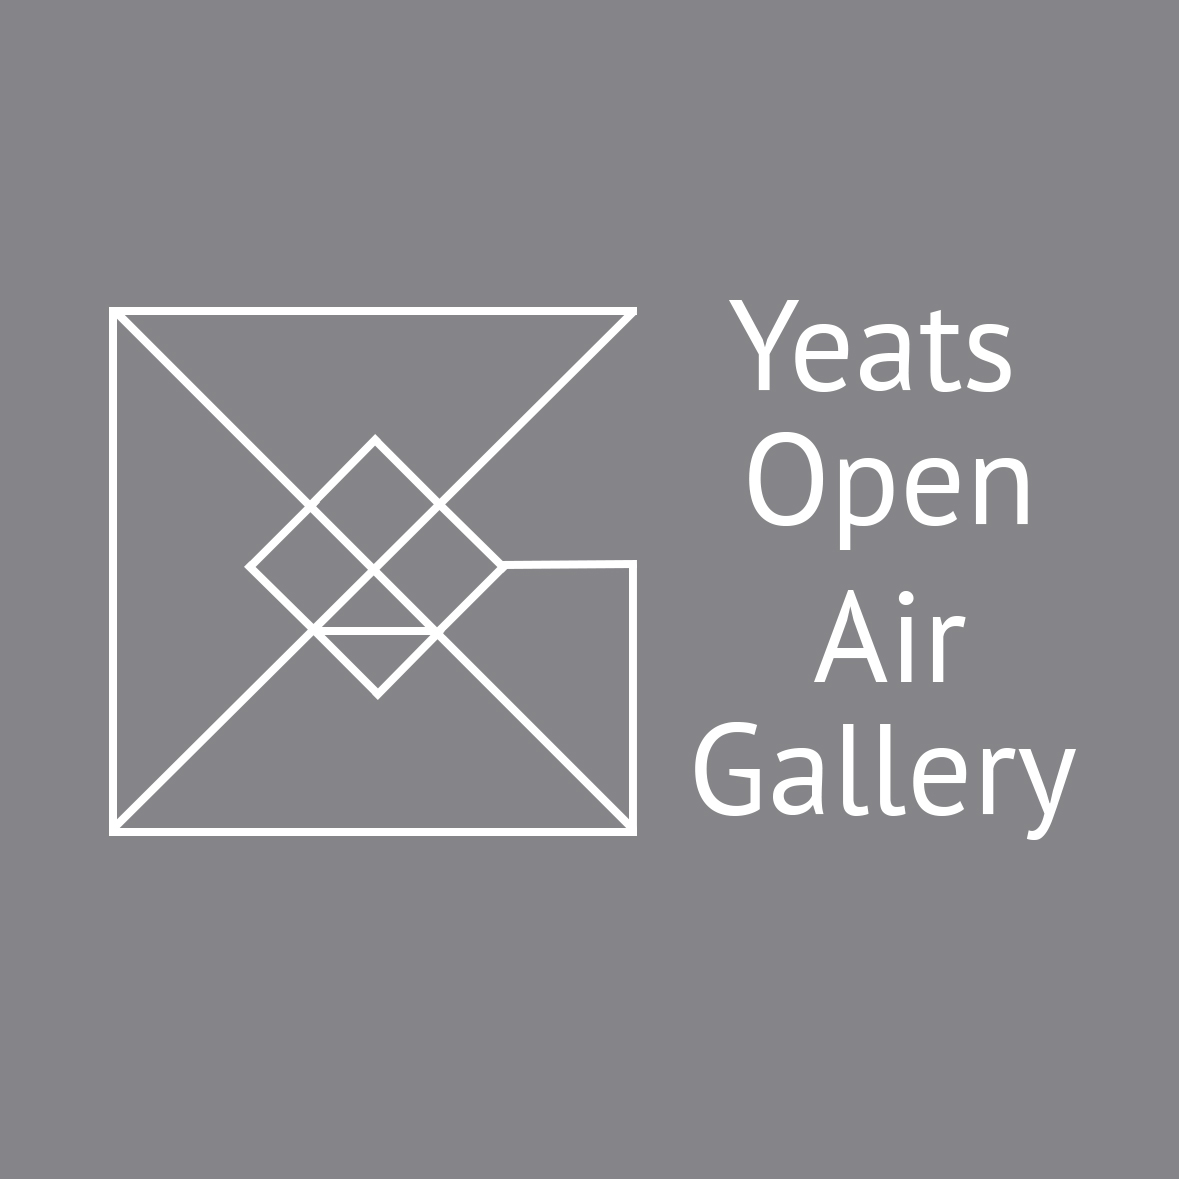 Yeats Open Air Gallery